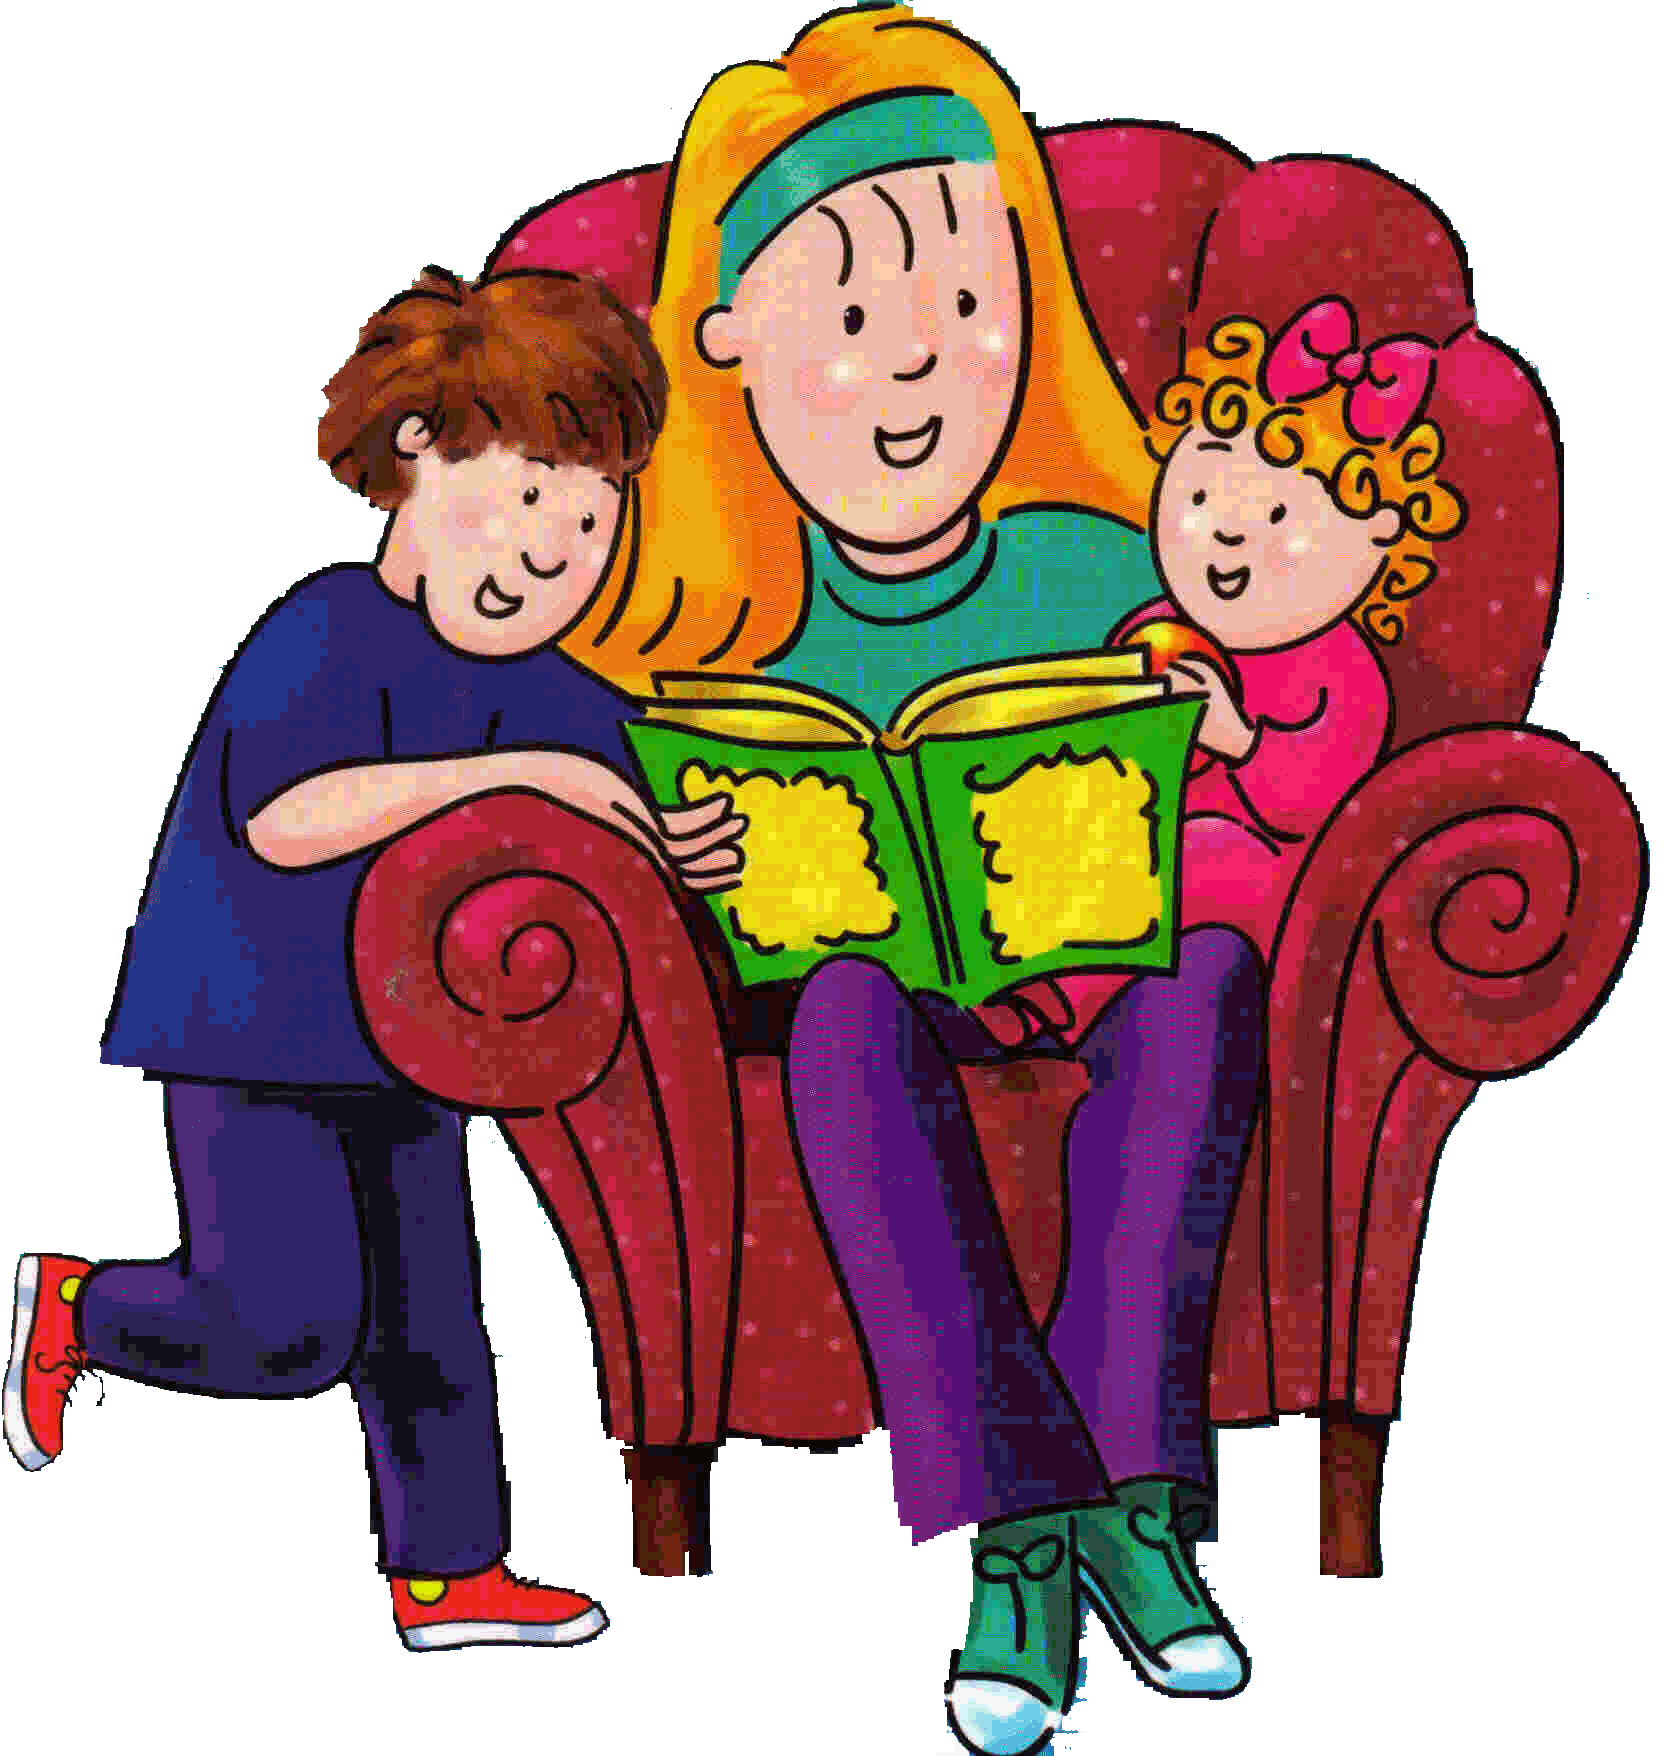 Childcare text images music. Patient clipart care worker